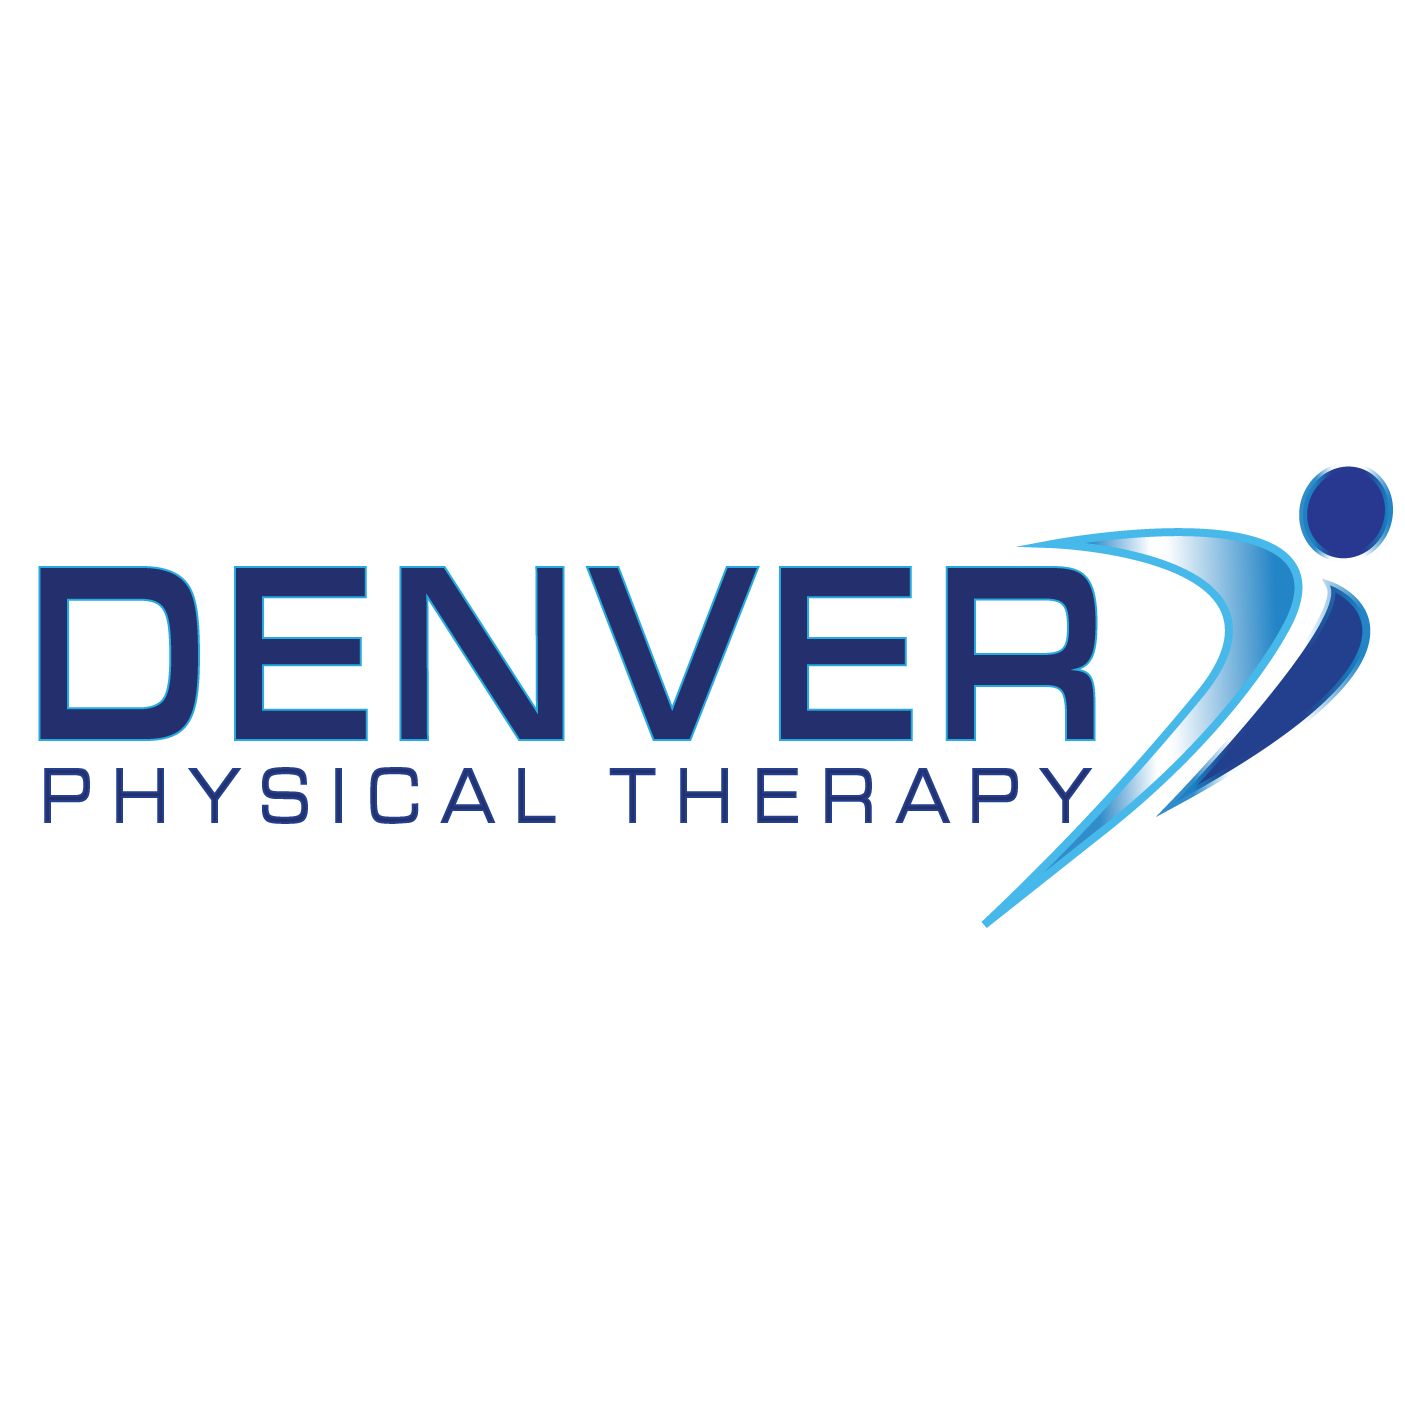 Denver Physical Therapy - Denver, CO - Physical Therapy & Rehab